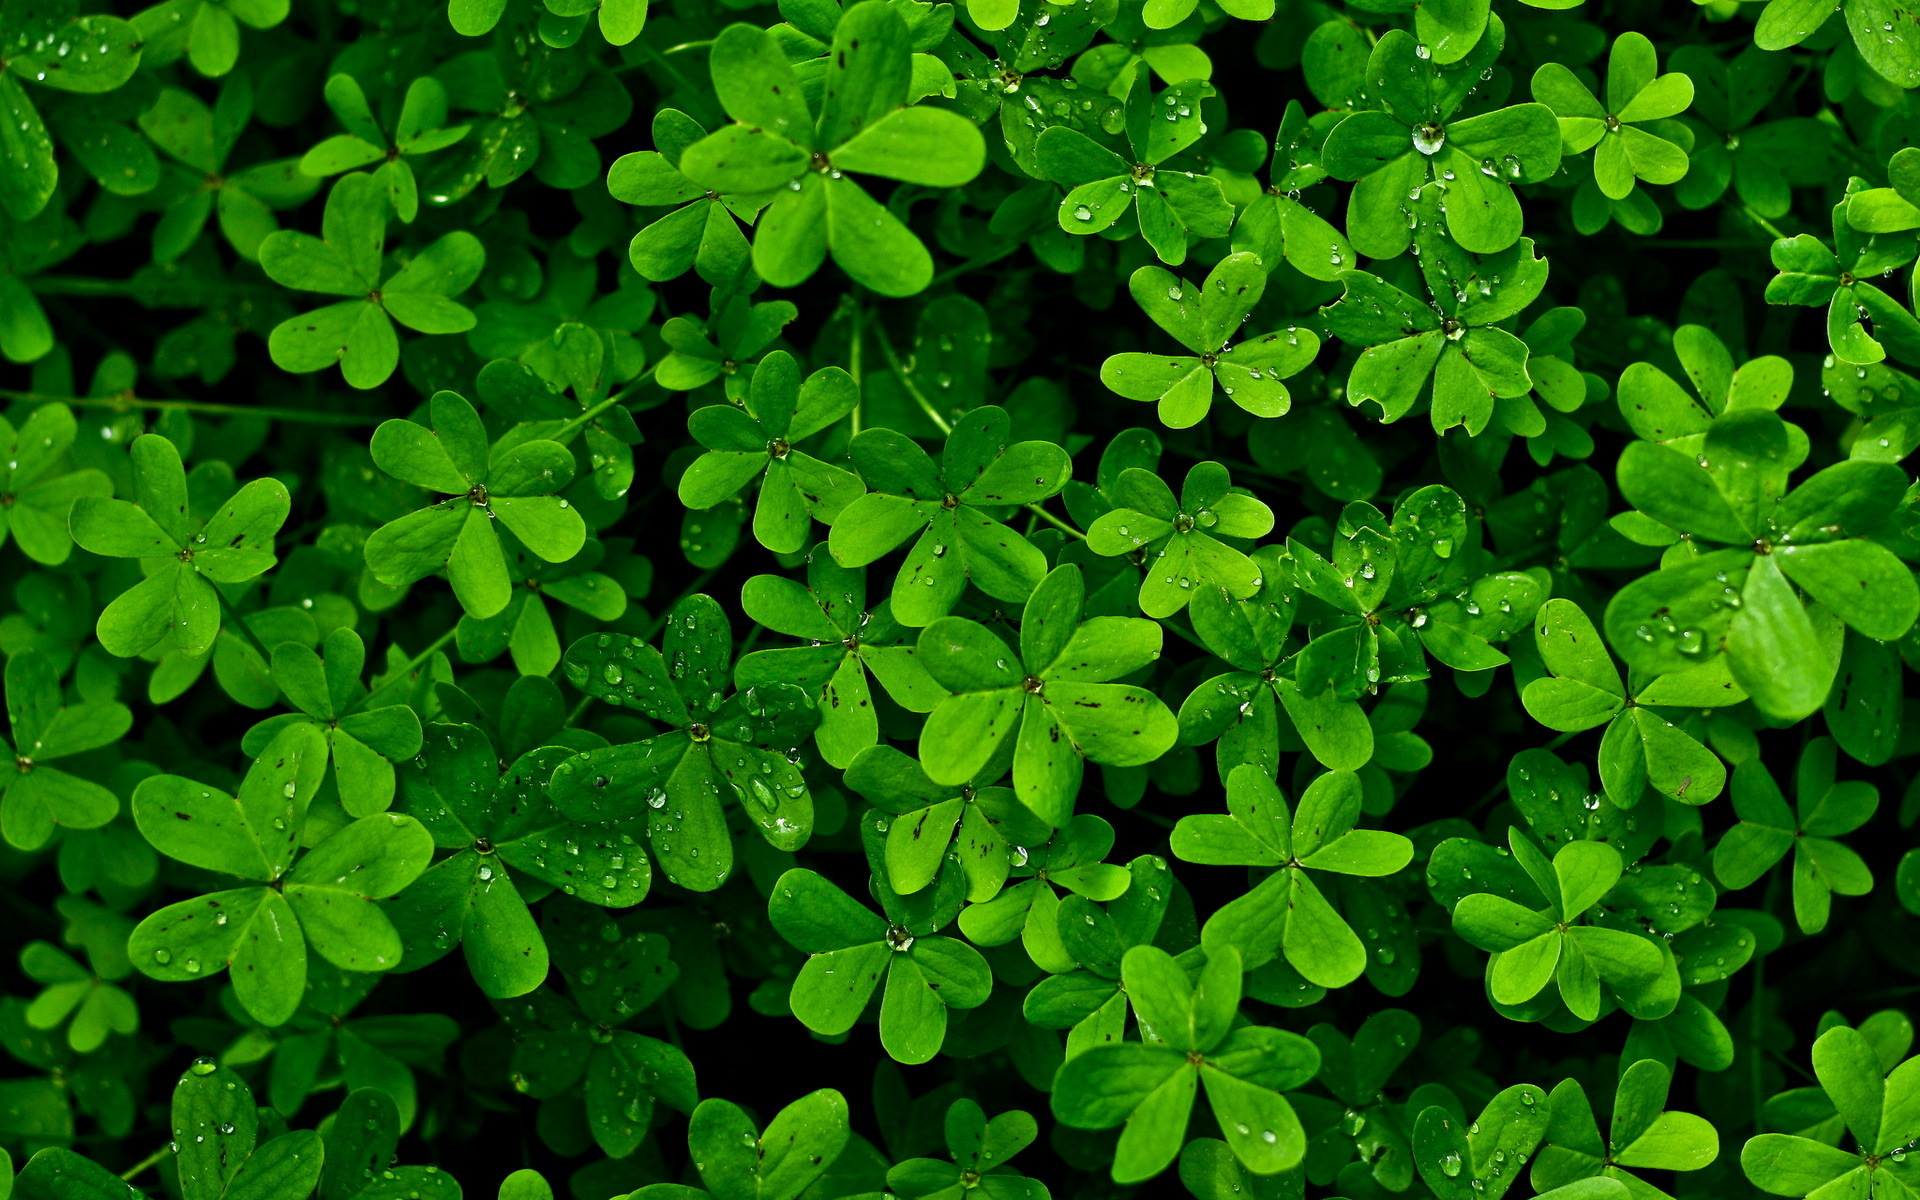 Clovers HD Wallpaper 1920x1080 Clovers HD Wallpaper 1920x1200 1920x1200